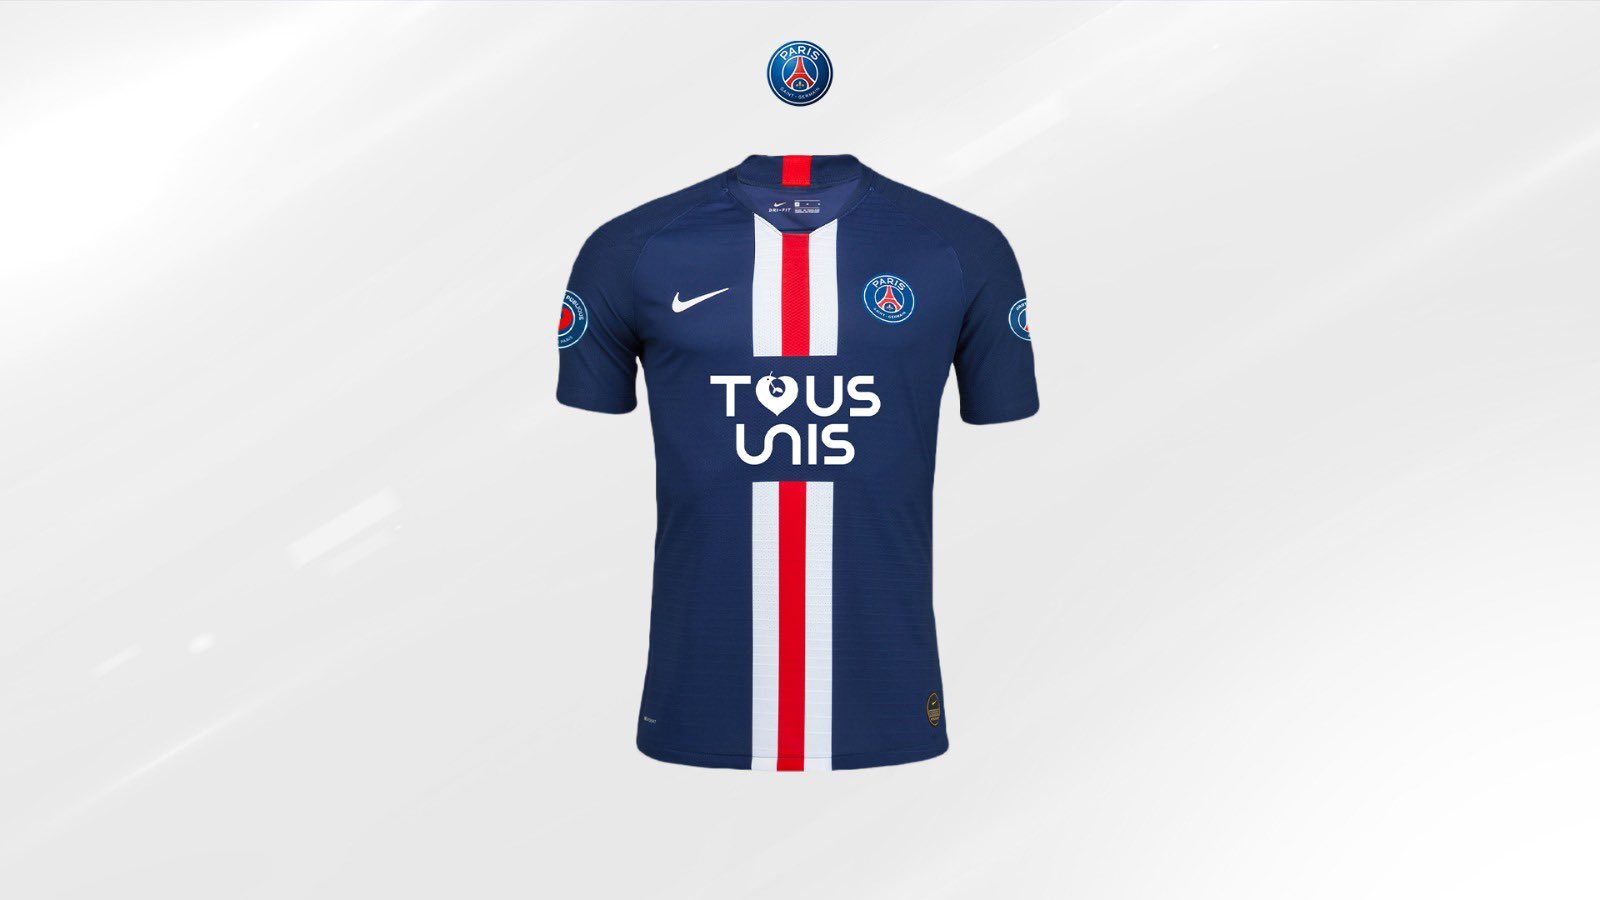 PSG launch limited edition kit to raise funds for health care staff